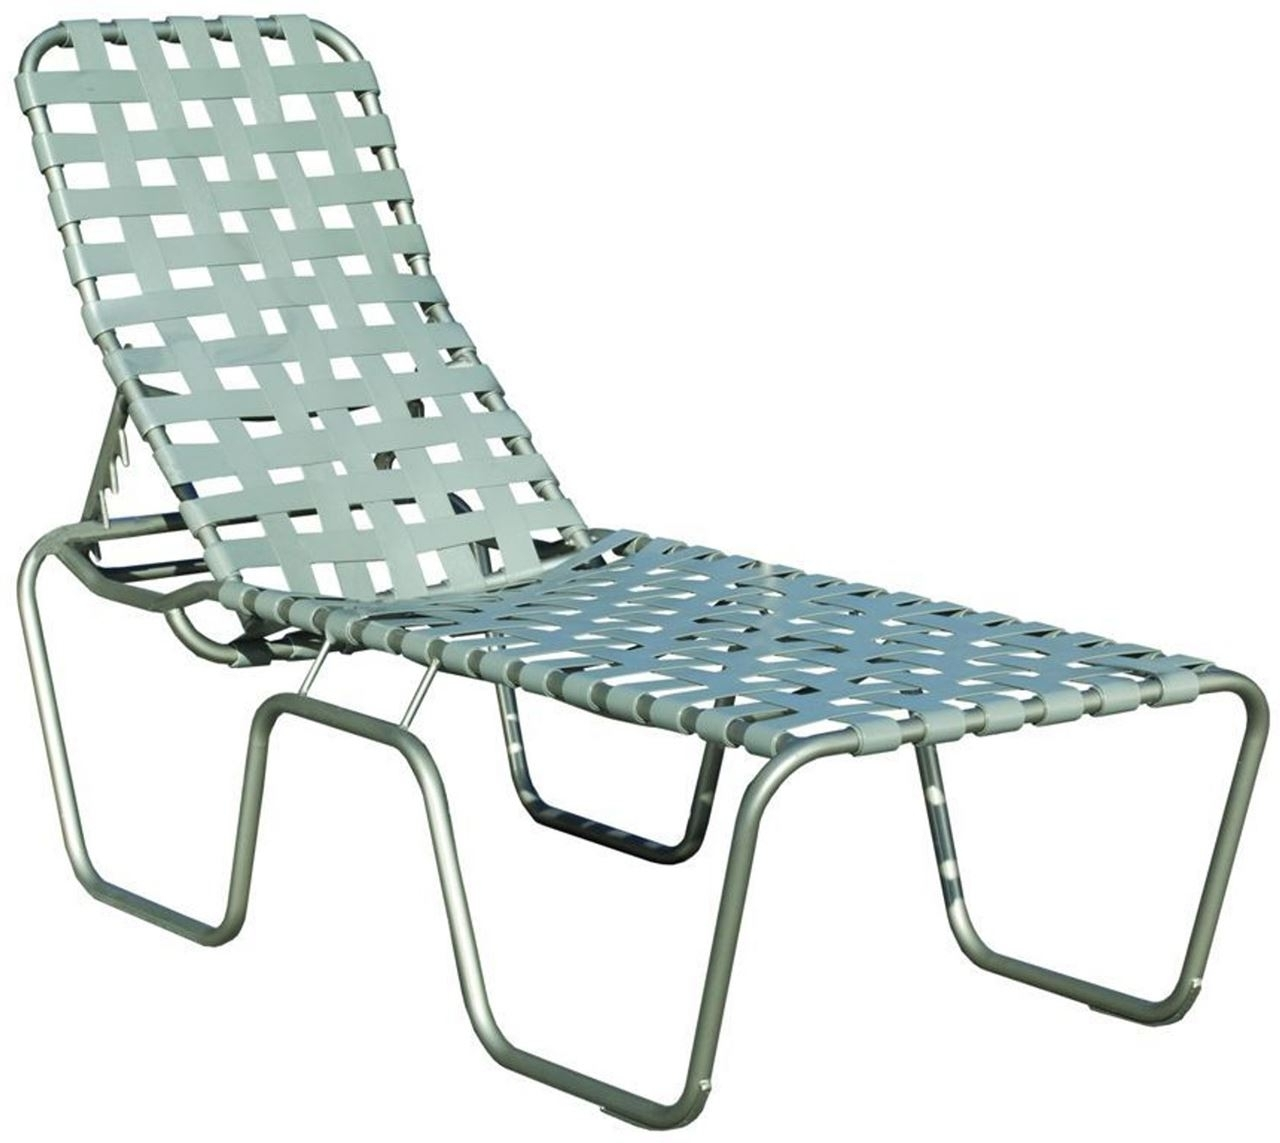 Fashionable Commercial Basketweave Strap High Seat Chaise Lounge Sanibel Intended For Chaise Lounge Strap Chairs (View 11 of 15)